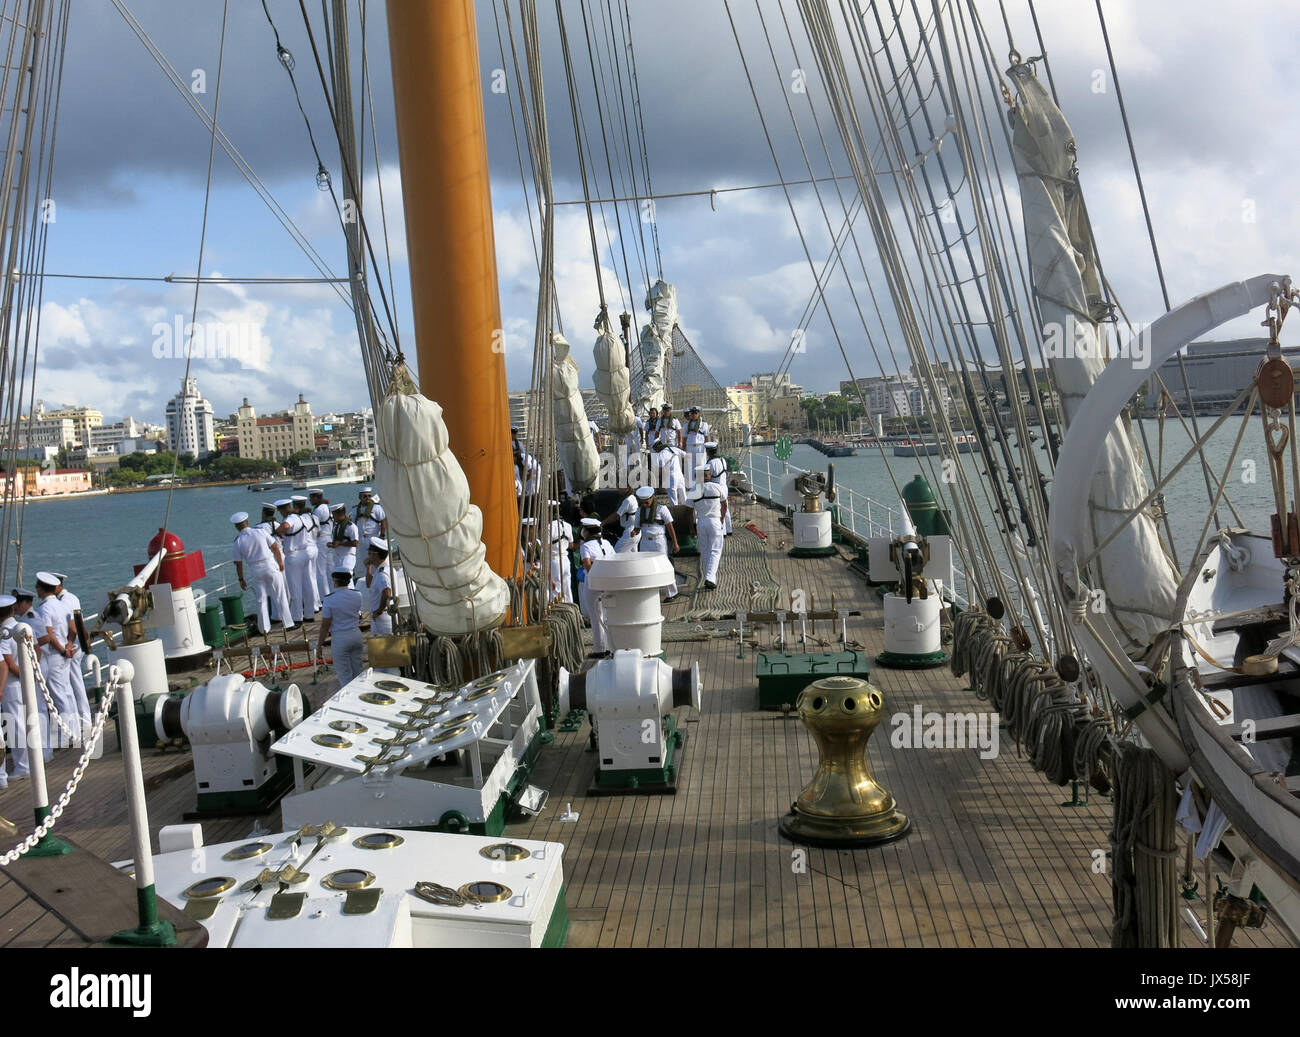 A view of the deck of the Chilean Army's training ship 'Esmeralda' in San Juan, Puerto Rico, 14 August 2017. The 'Esmeralda' arrived in San Juan de Puerto Rico as part of its 62nd training cruise. EFE/Alfonso Rodriguez - Stock Image